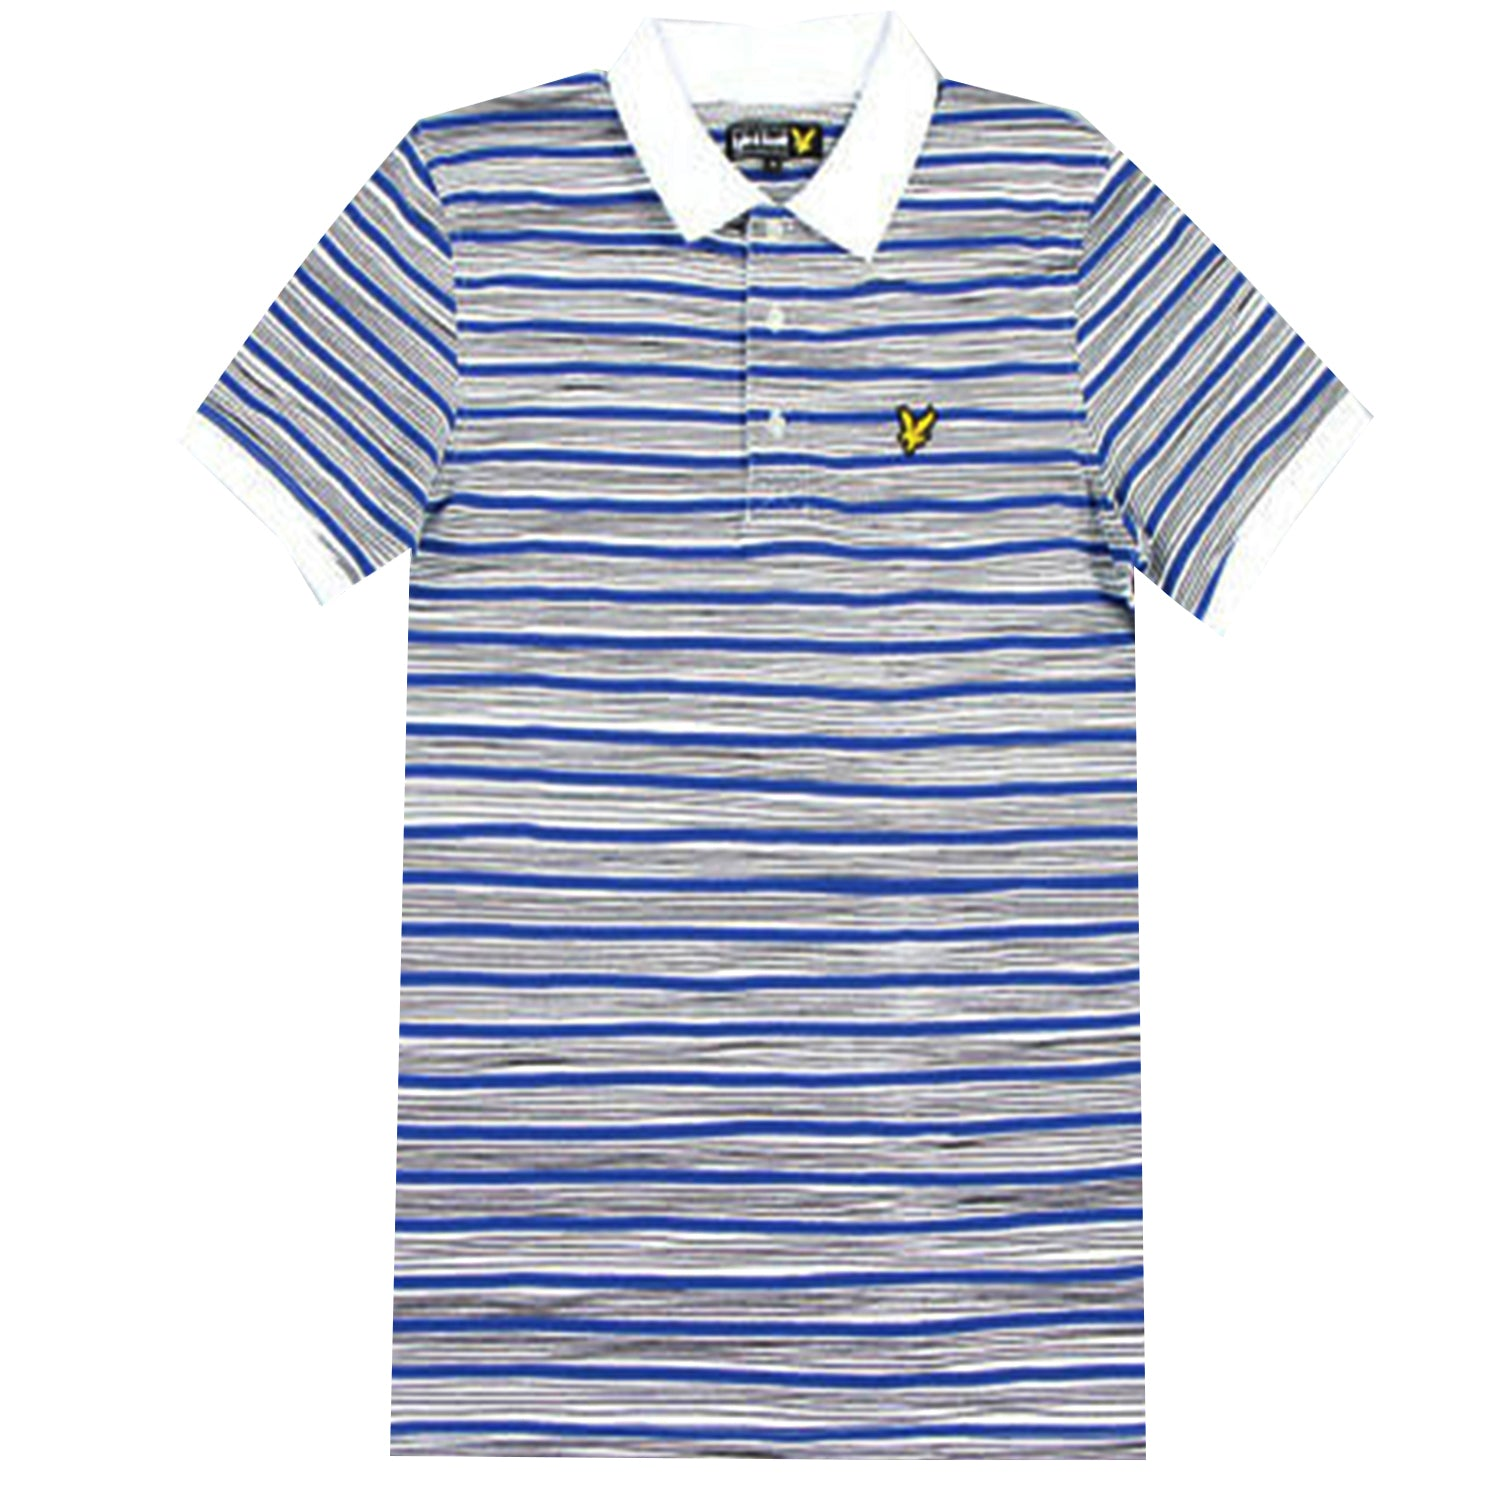 Lyle & Scott Hand Drawn Stripe Printed Polo T-Shirt